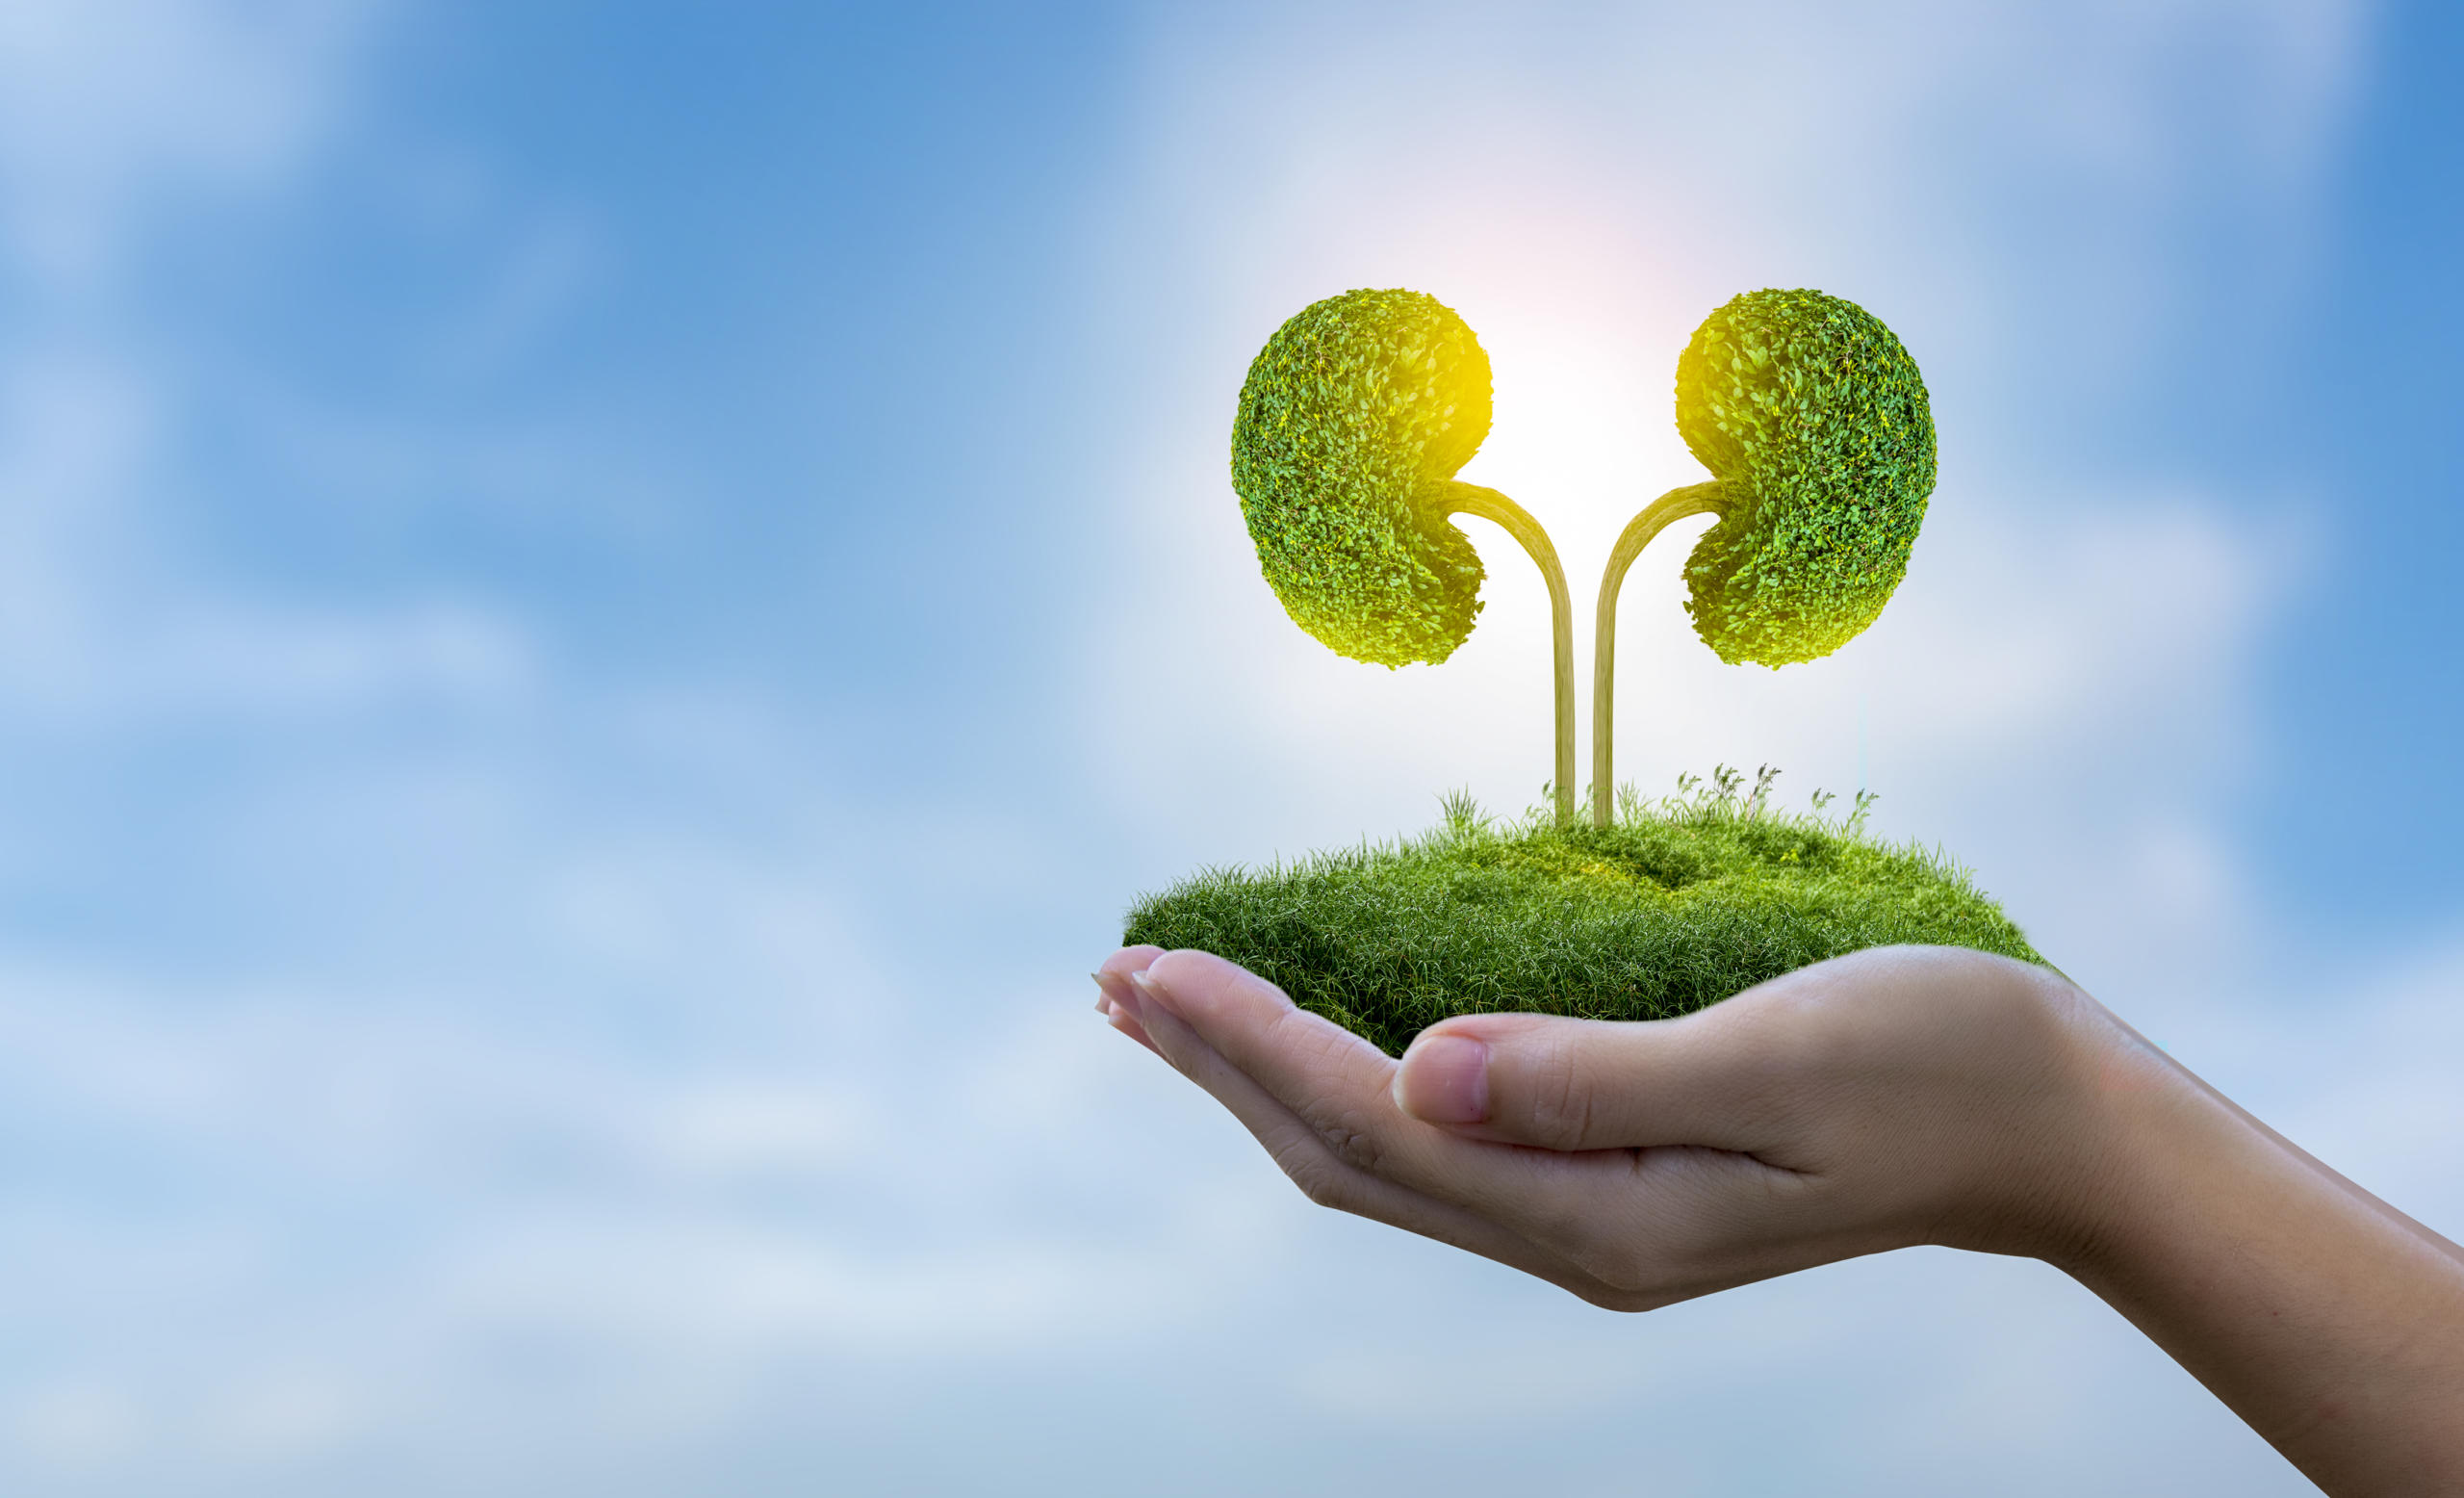 Healthy Kidneys: Image Of Person Holding Green Kidney Landscape Against Sky